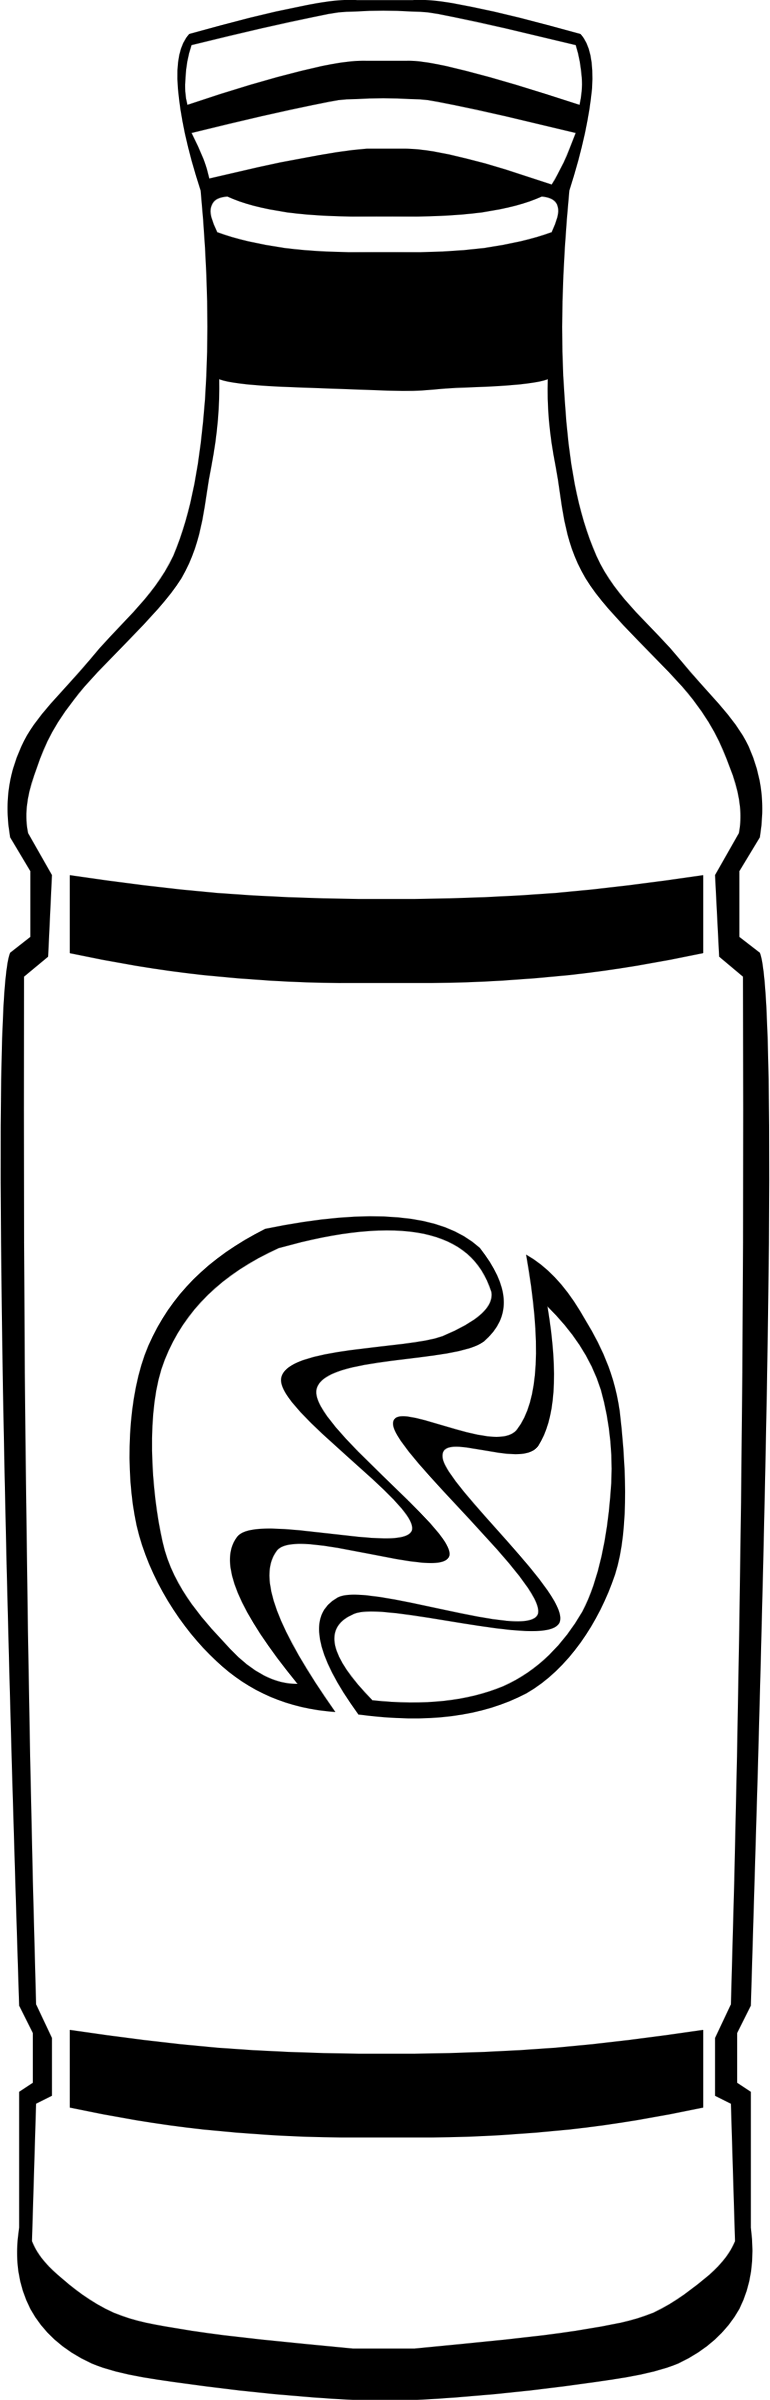 Fast food drinks bottle. Drinking clipart black and white